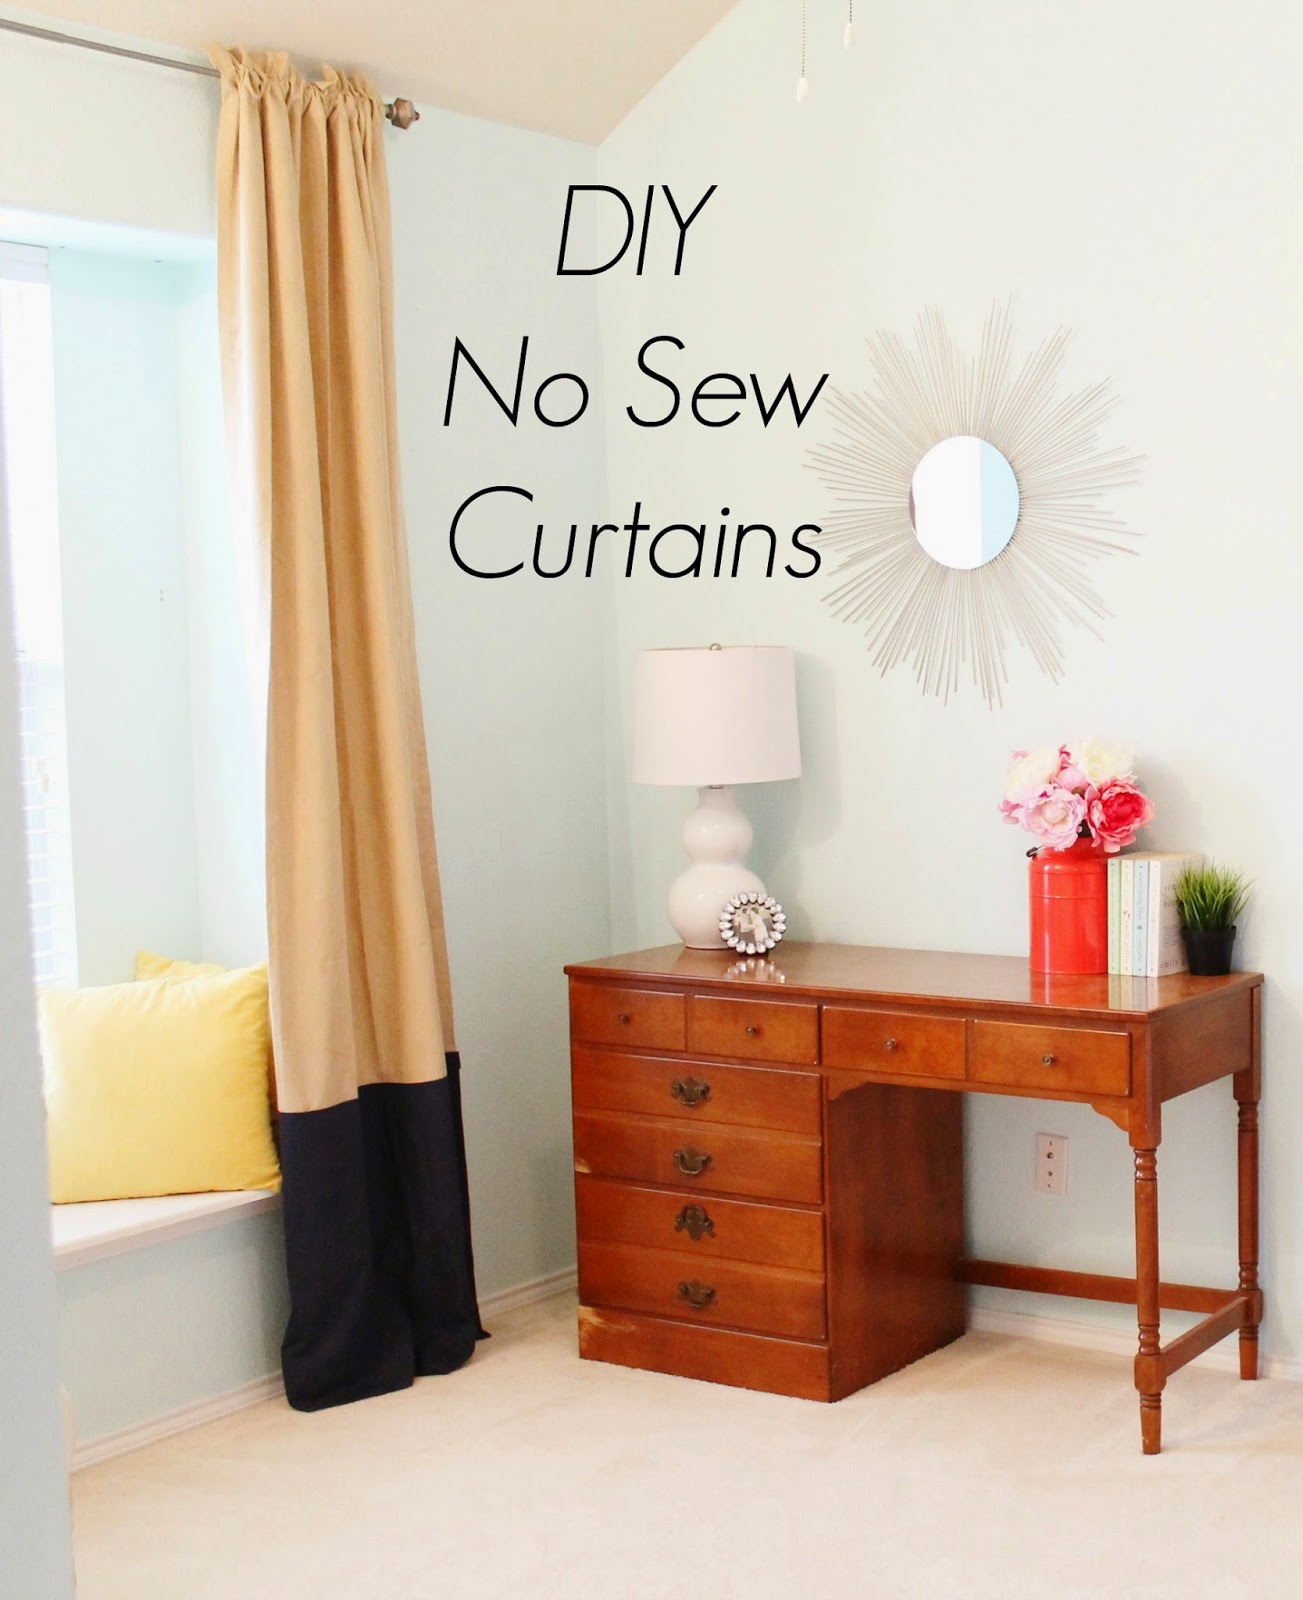 Tucker Up Diy No Sew Curtains